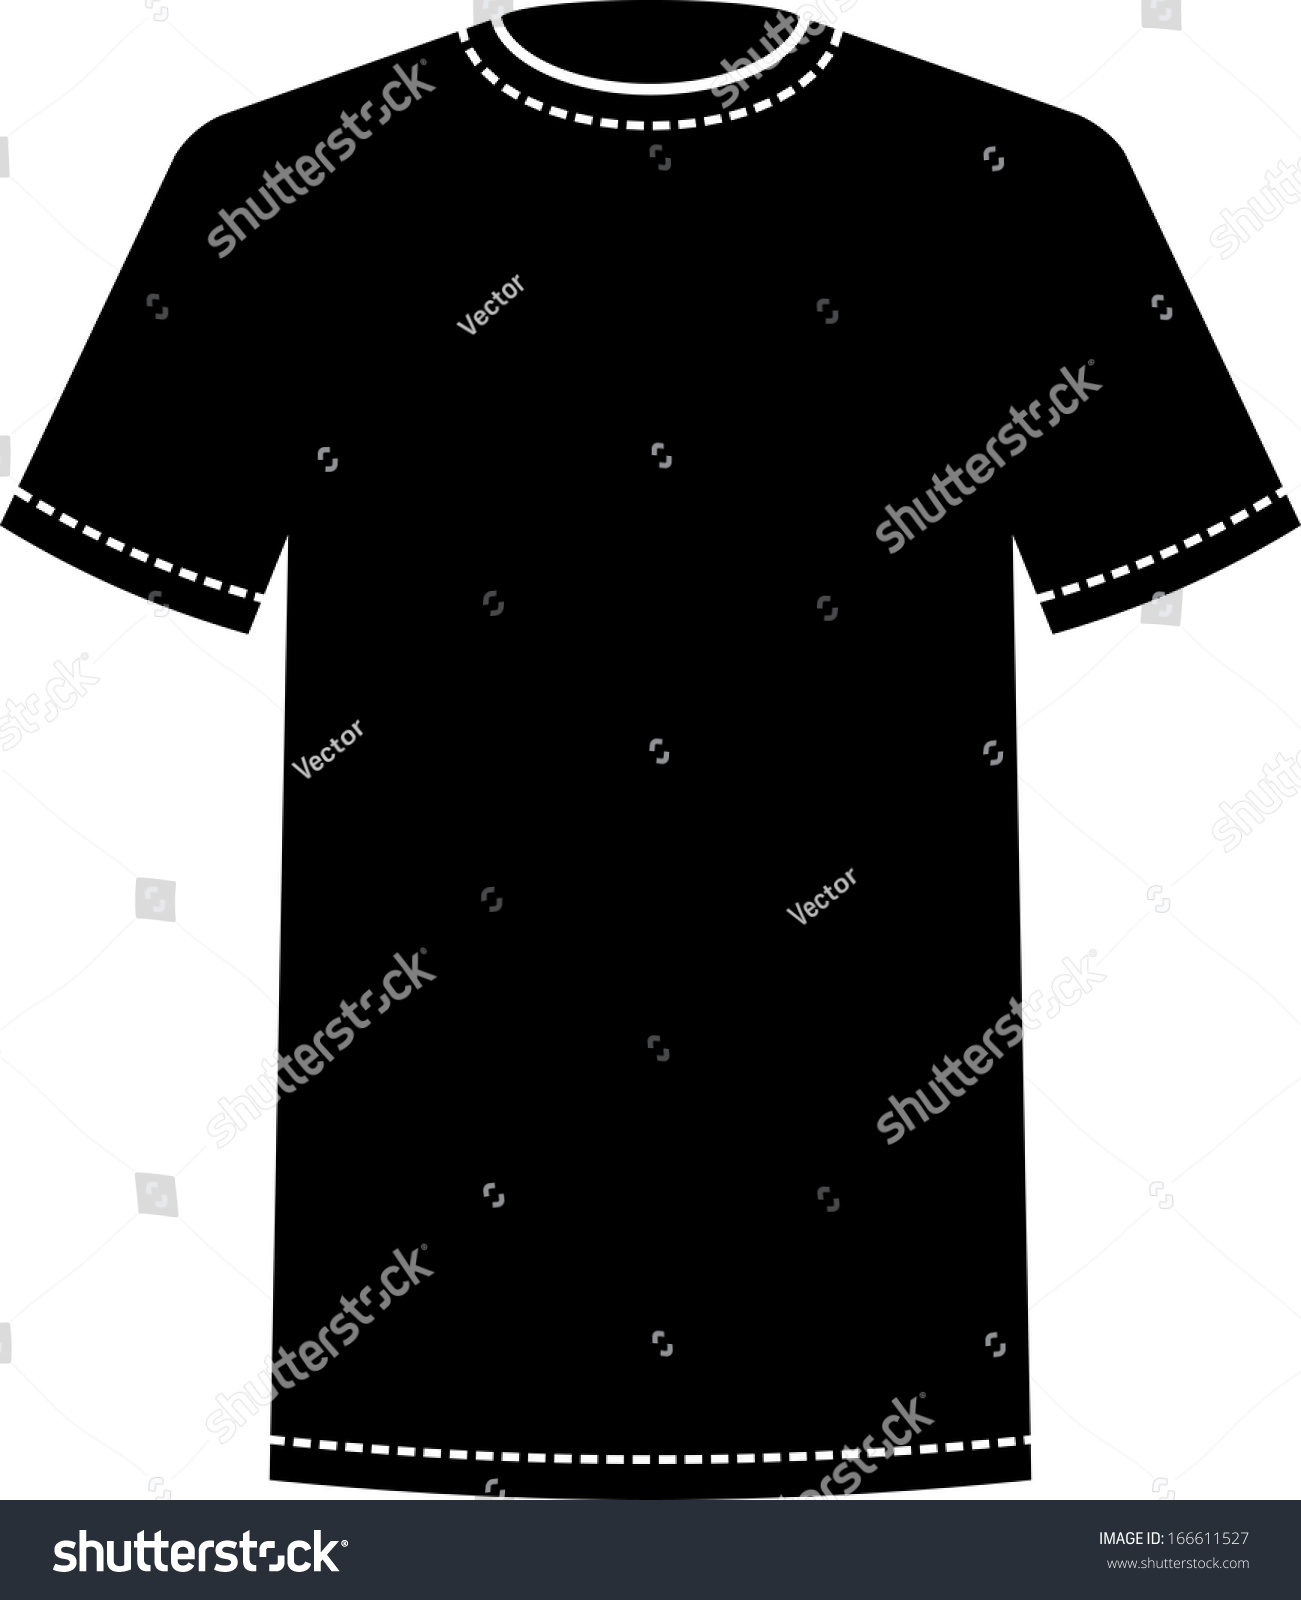 Black t shirt template vector - Blank Black T Shirt Template Vector